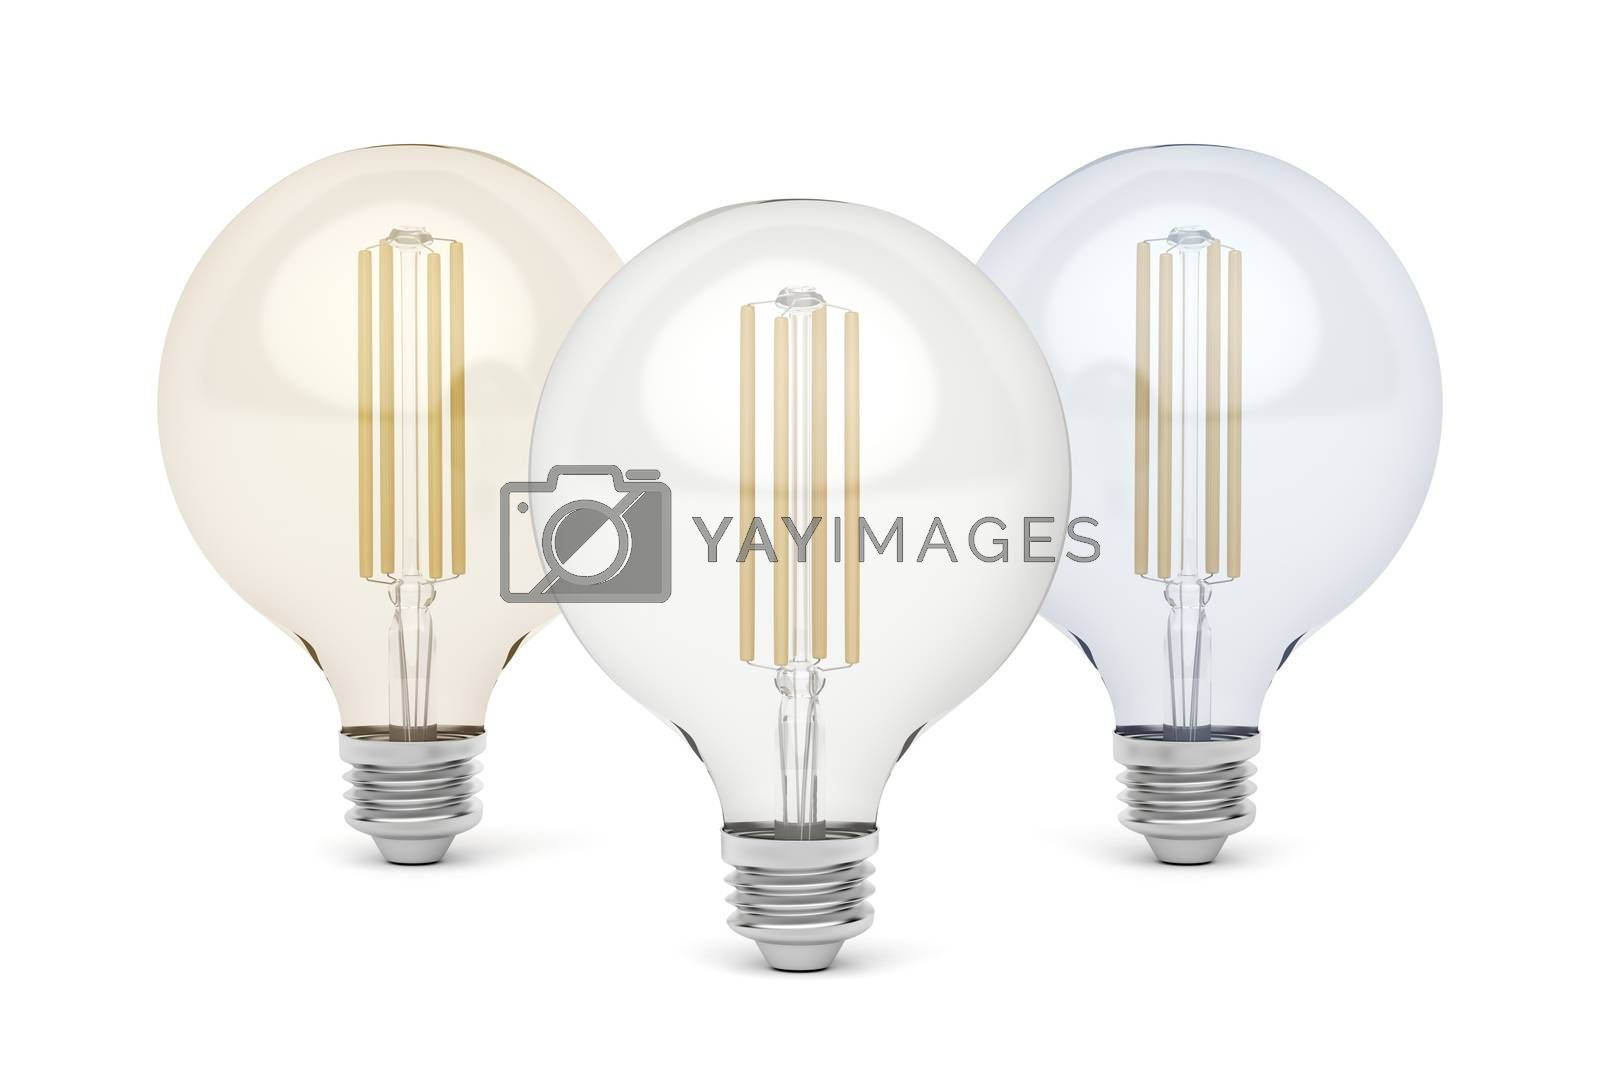 Three LED light bulbs with different light color temperature